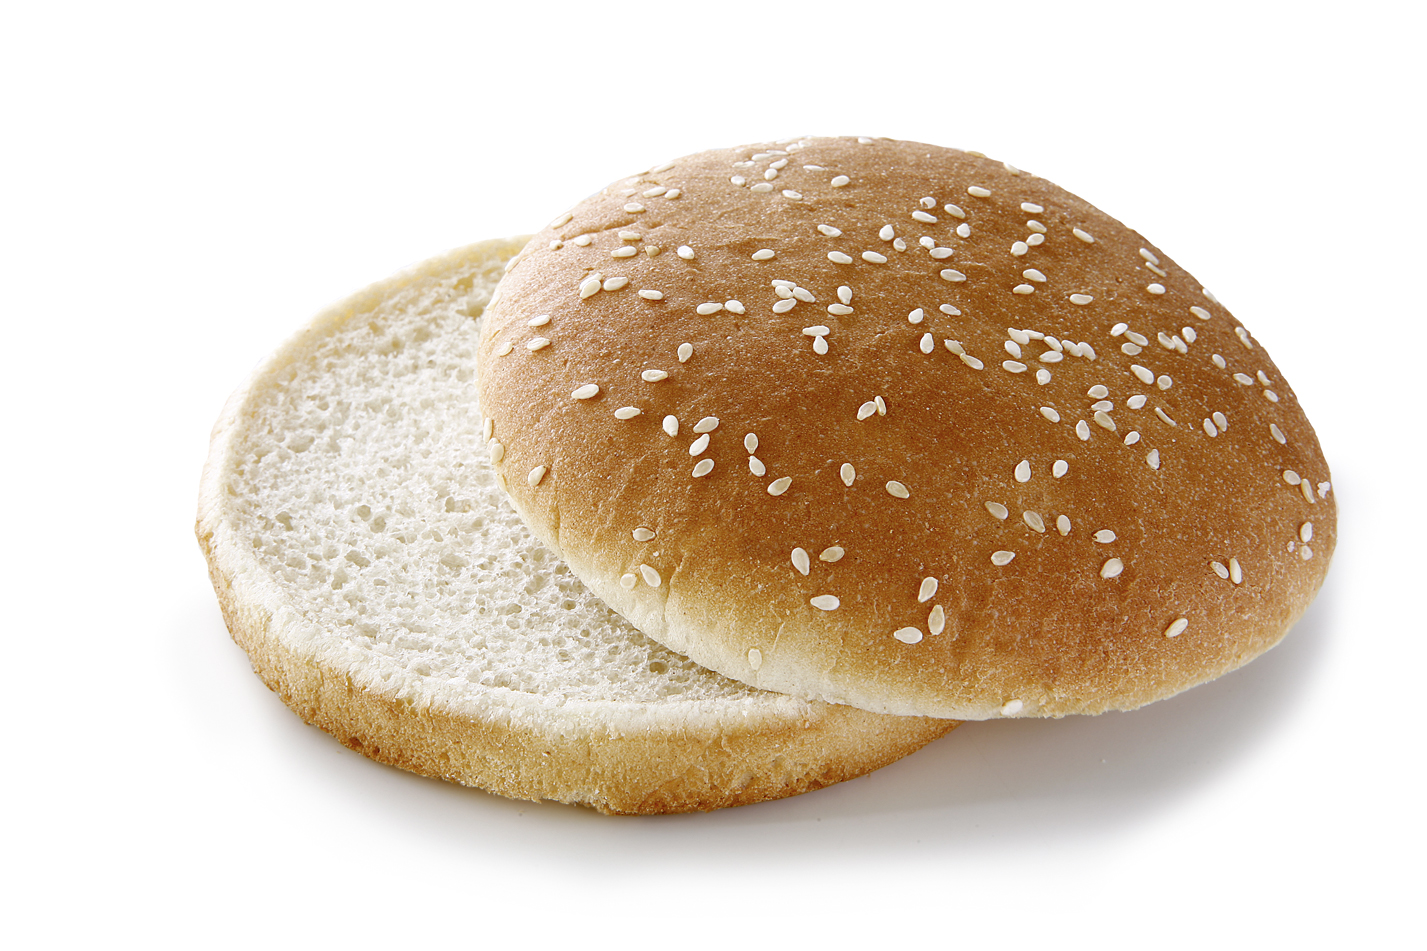 Hamburger Bun sesame seeds, sliced - Wheat roll/ traditional shape sprinkled with sesame seeds/ thaw only diameter: 12.5 cm/ 5 Inches